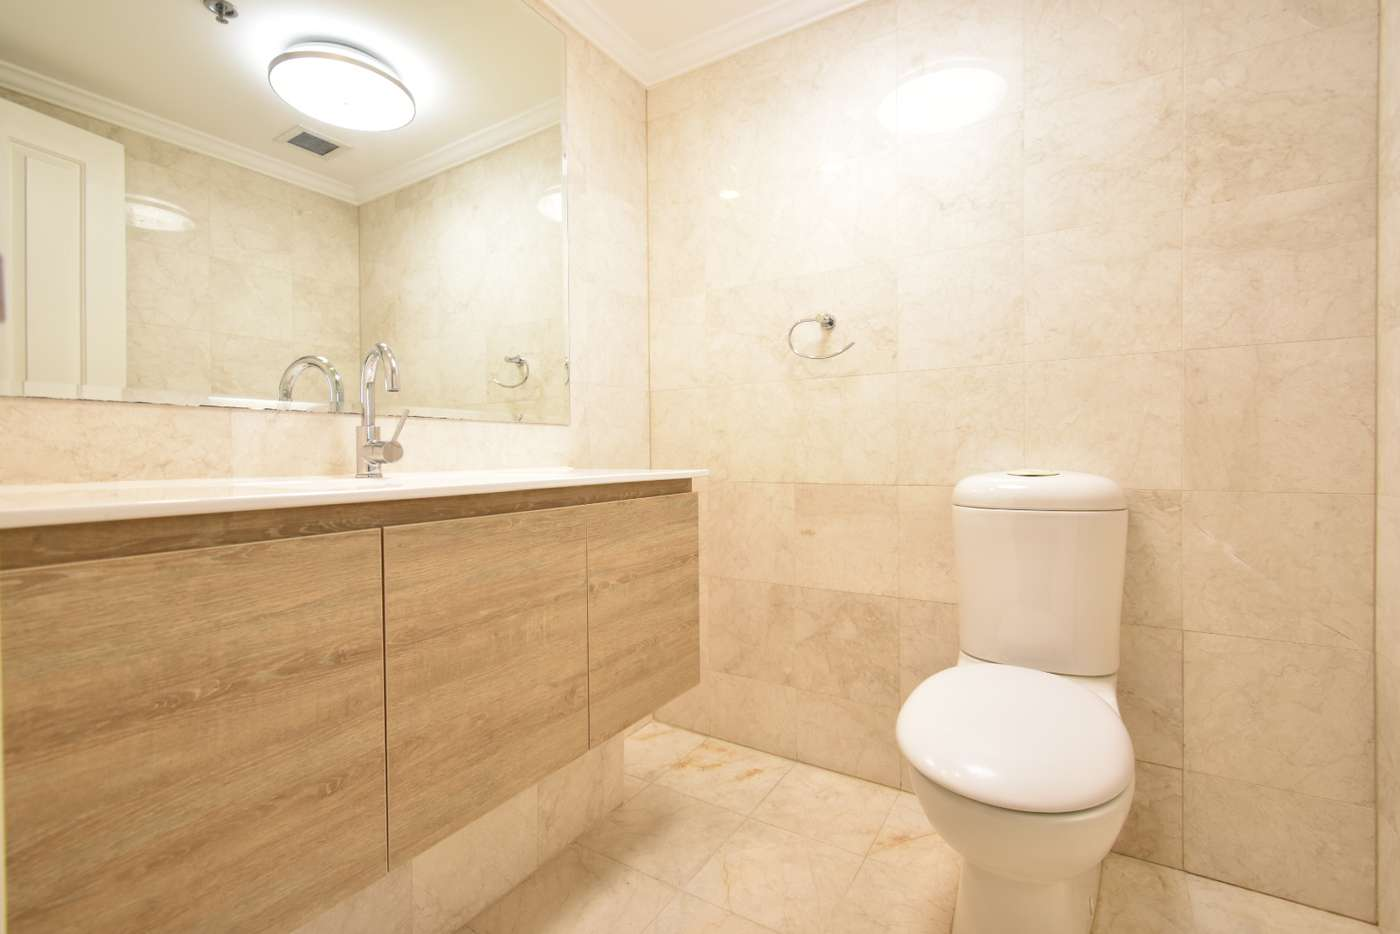 Sixth view of Homely apartment listing, Unit 84/515 Kent St, Sydney NSW 2000